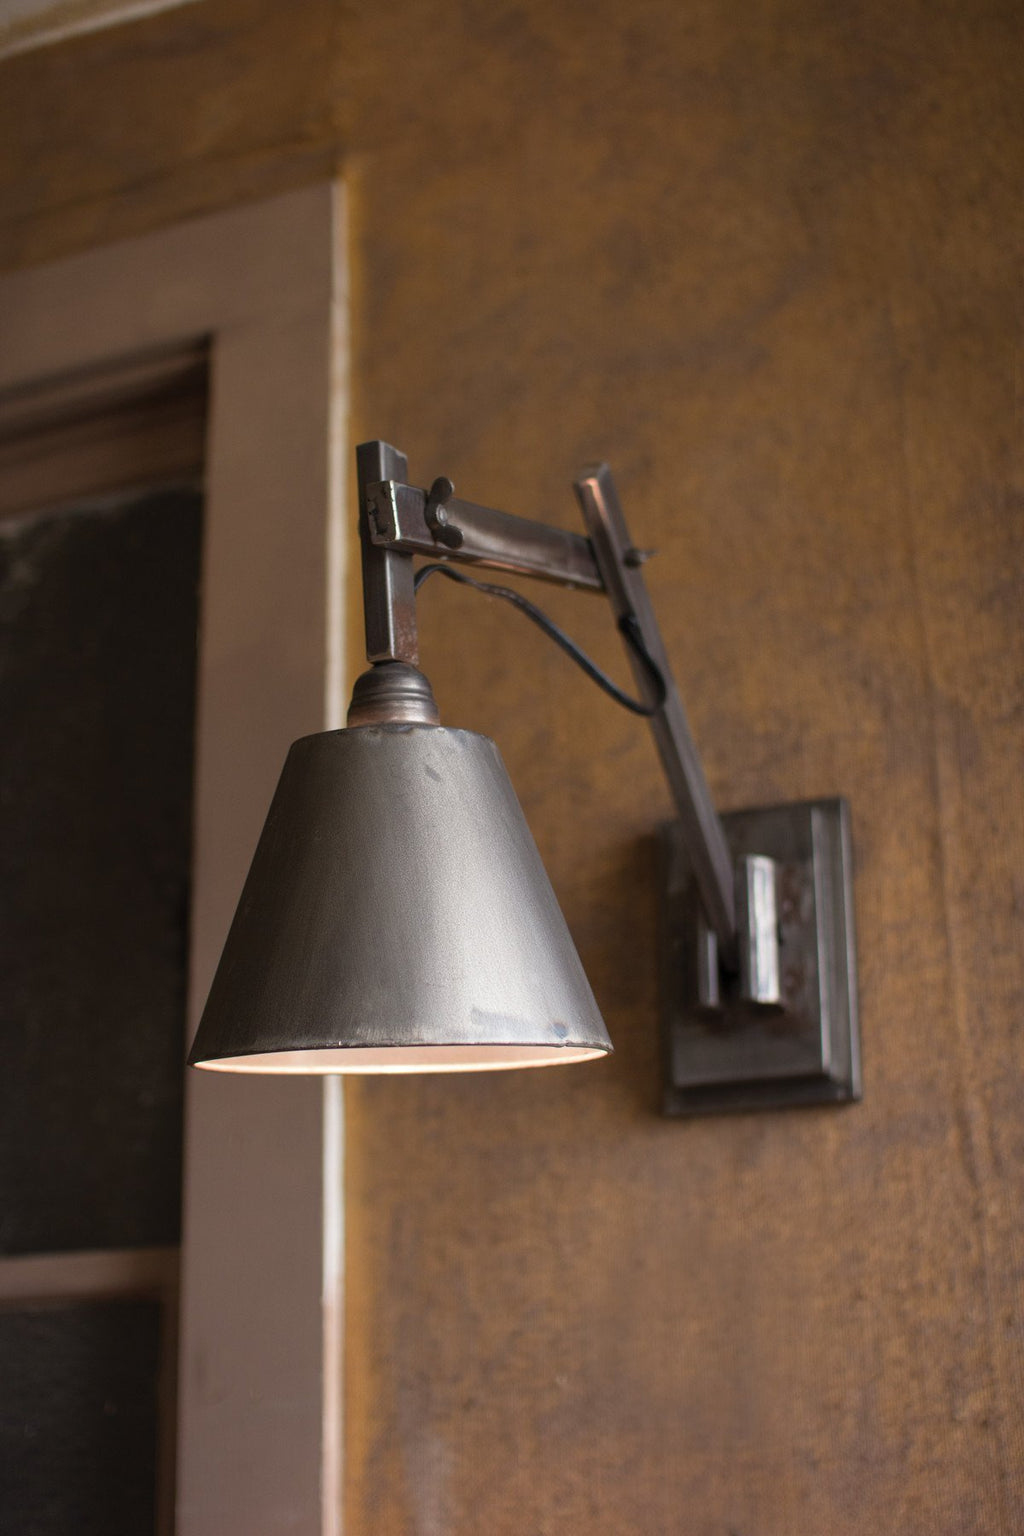 Urban Farmhouse Designs Wall Studio Lamp